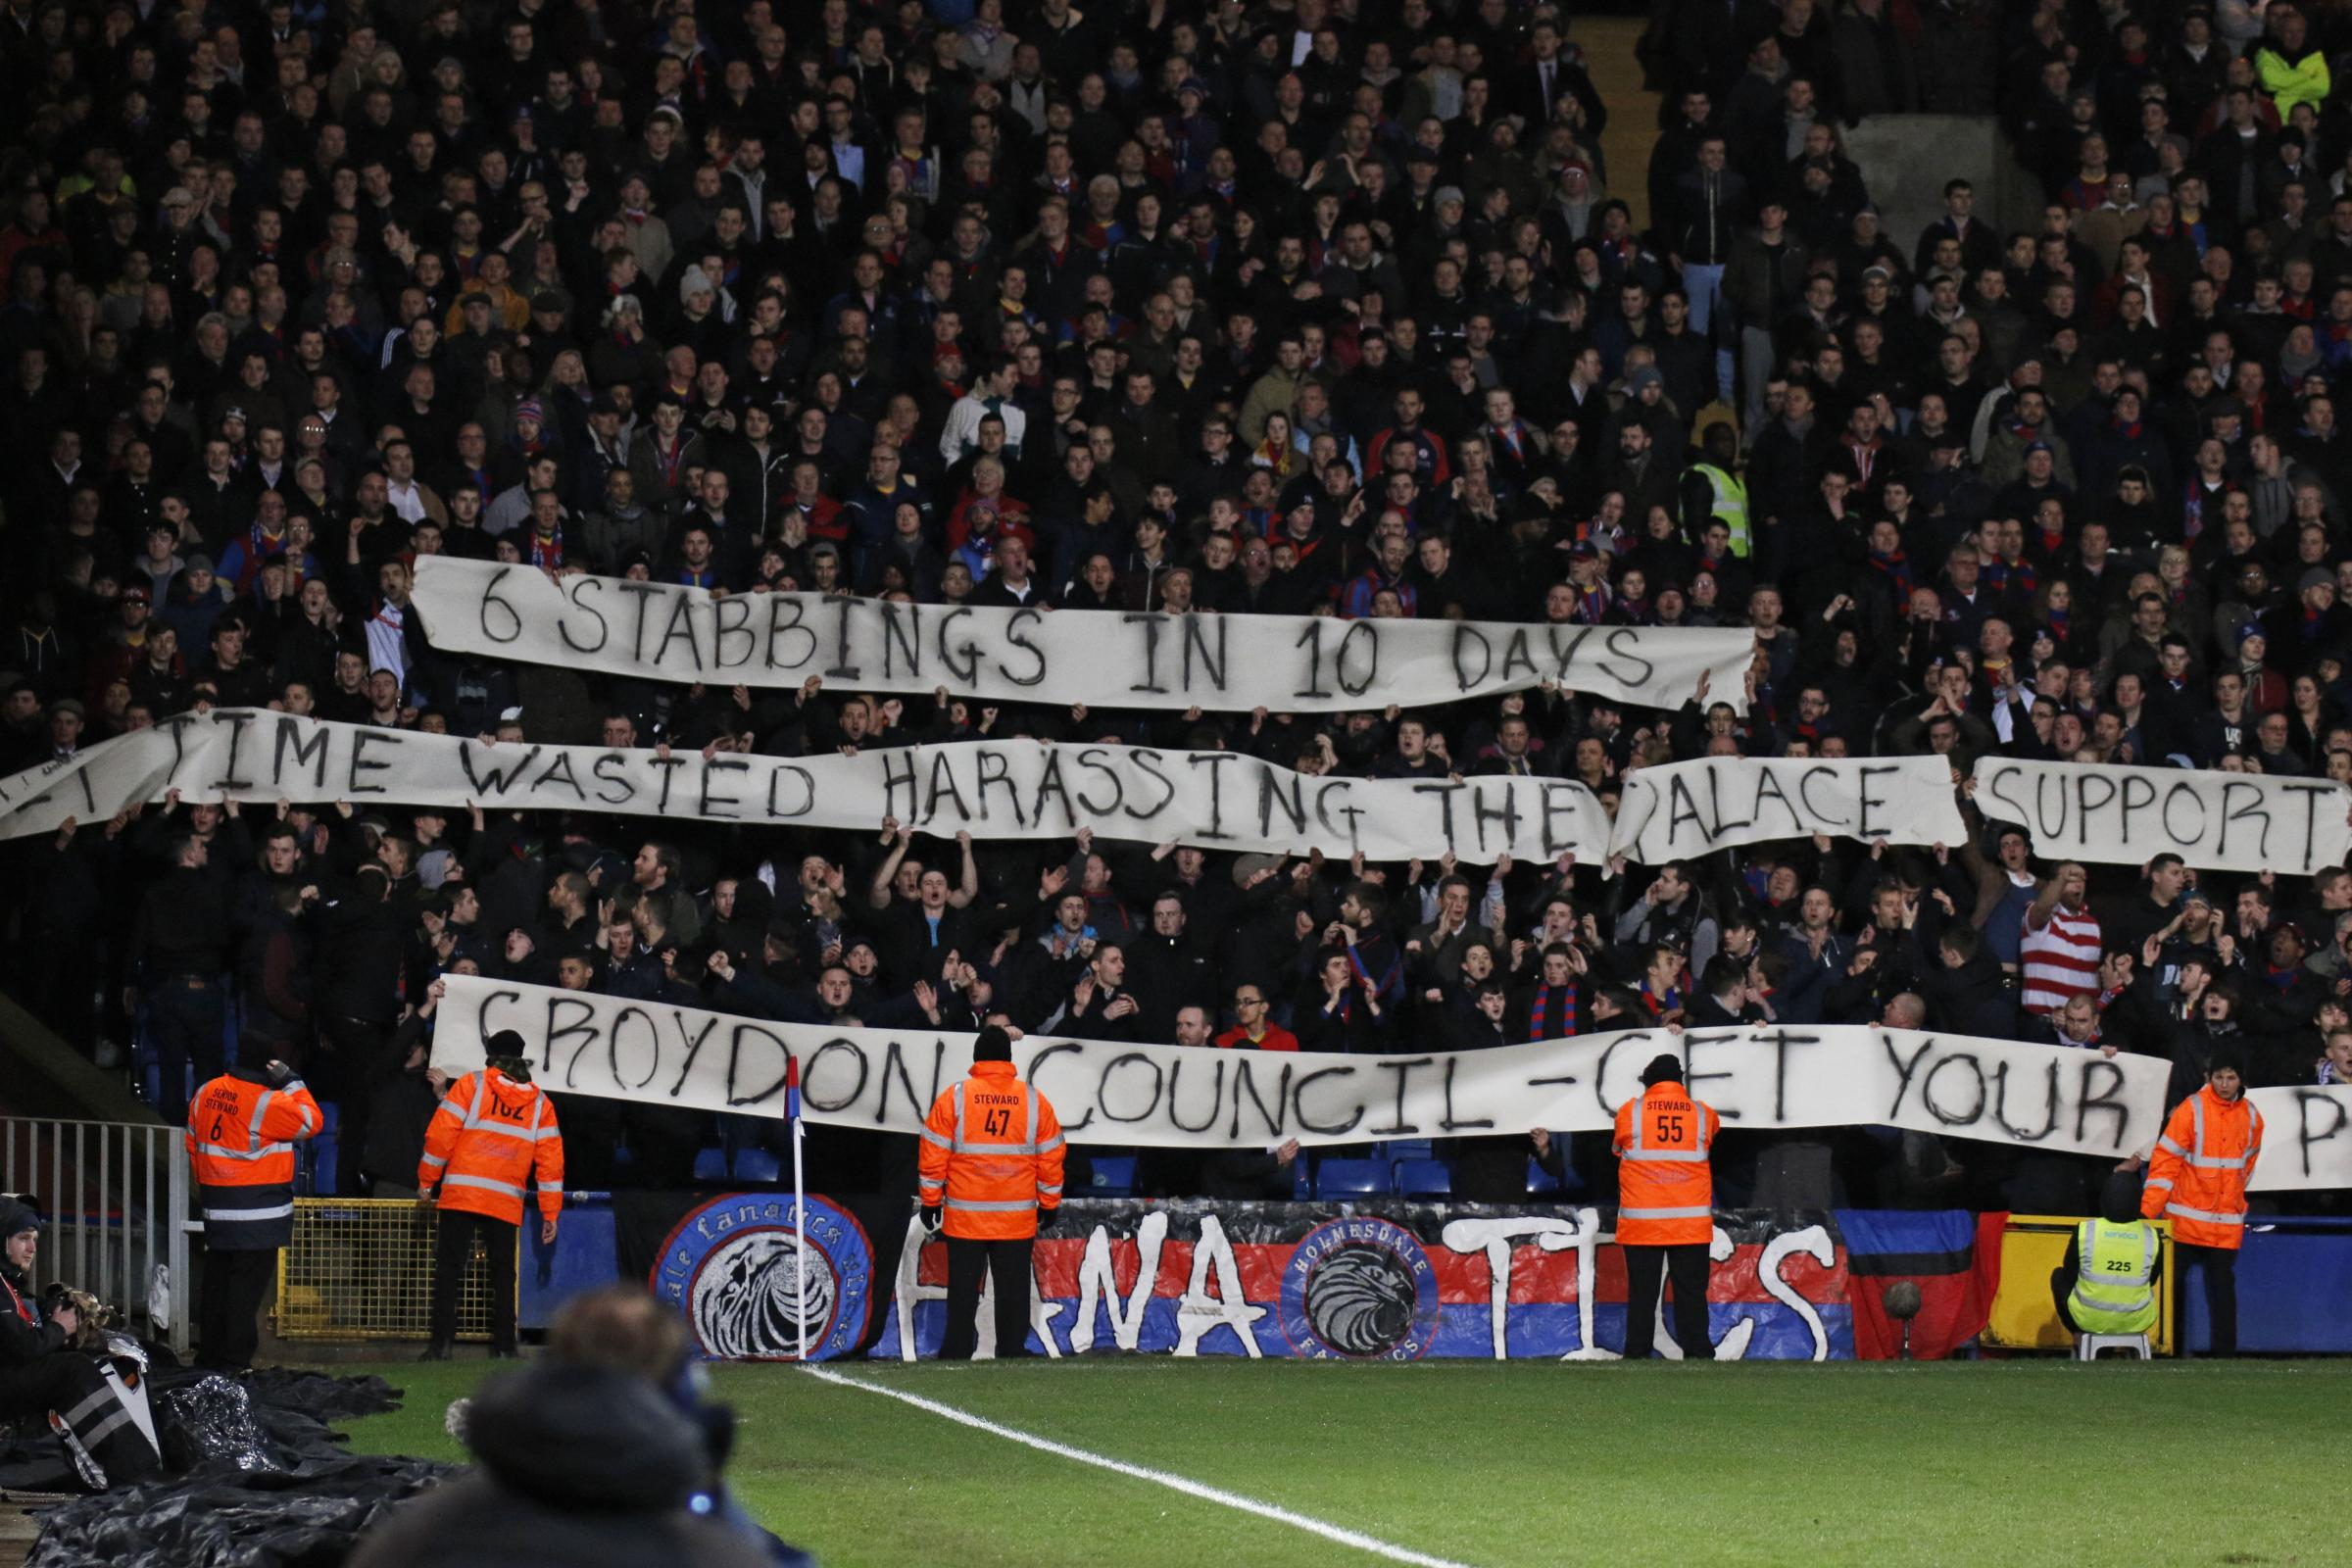 The banner held up by the Holmesdale Fanatics during the game.